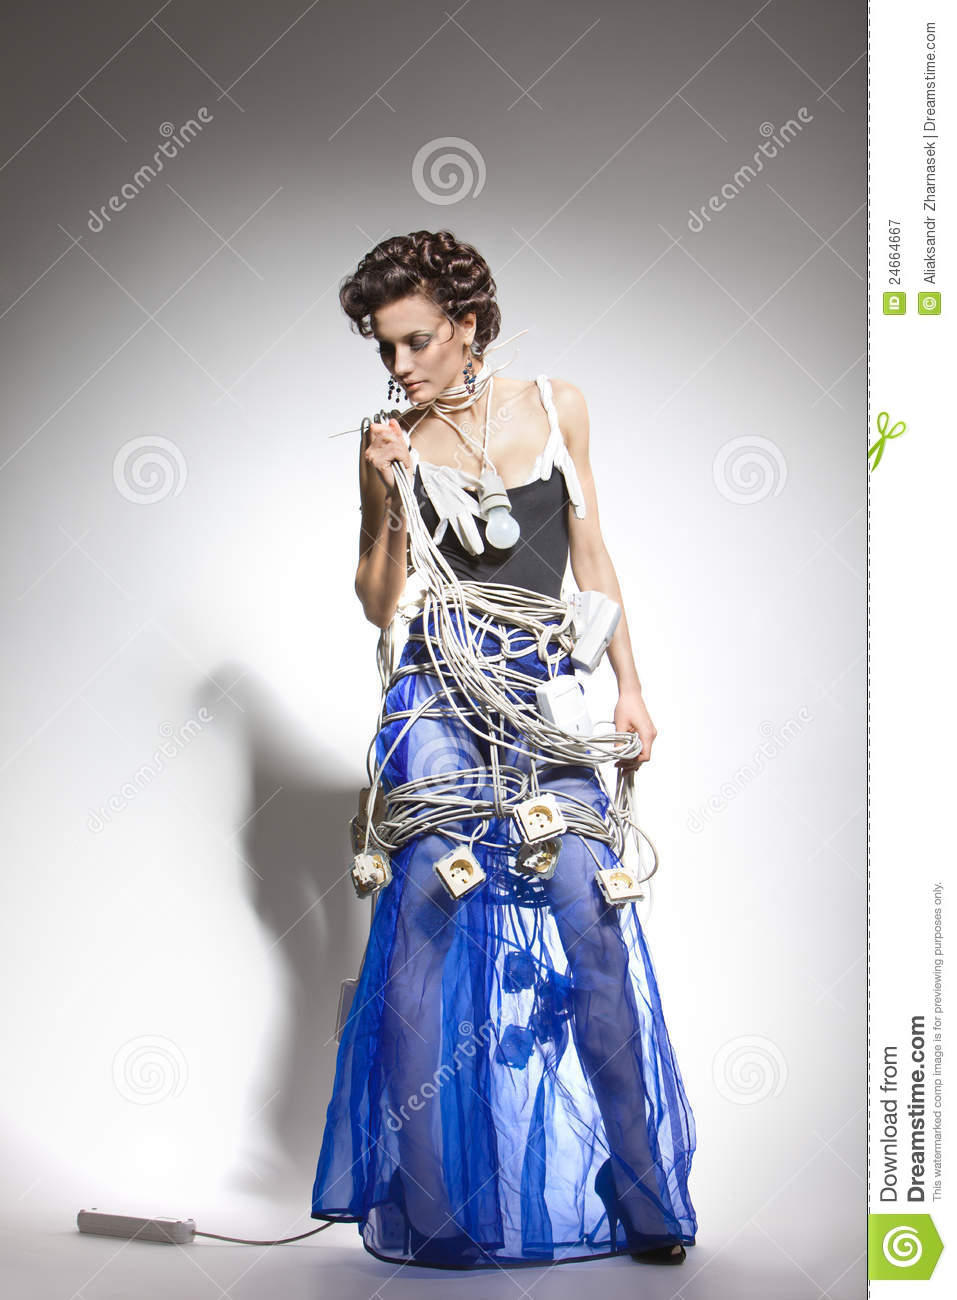 Fashion Model in an unusual costume of the wires